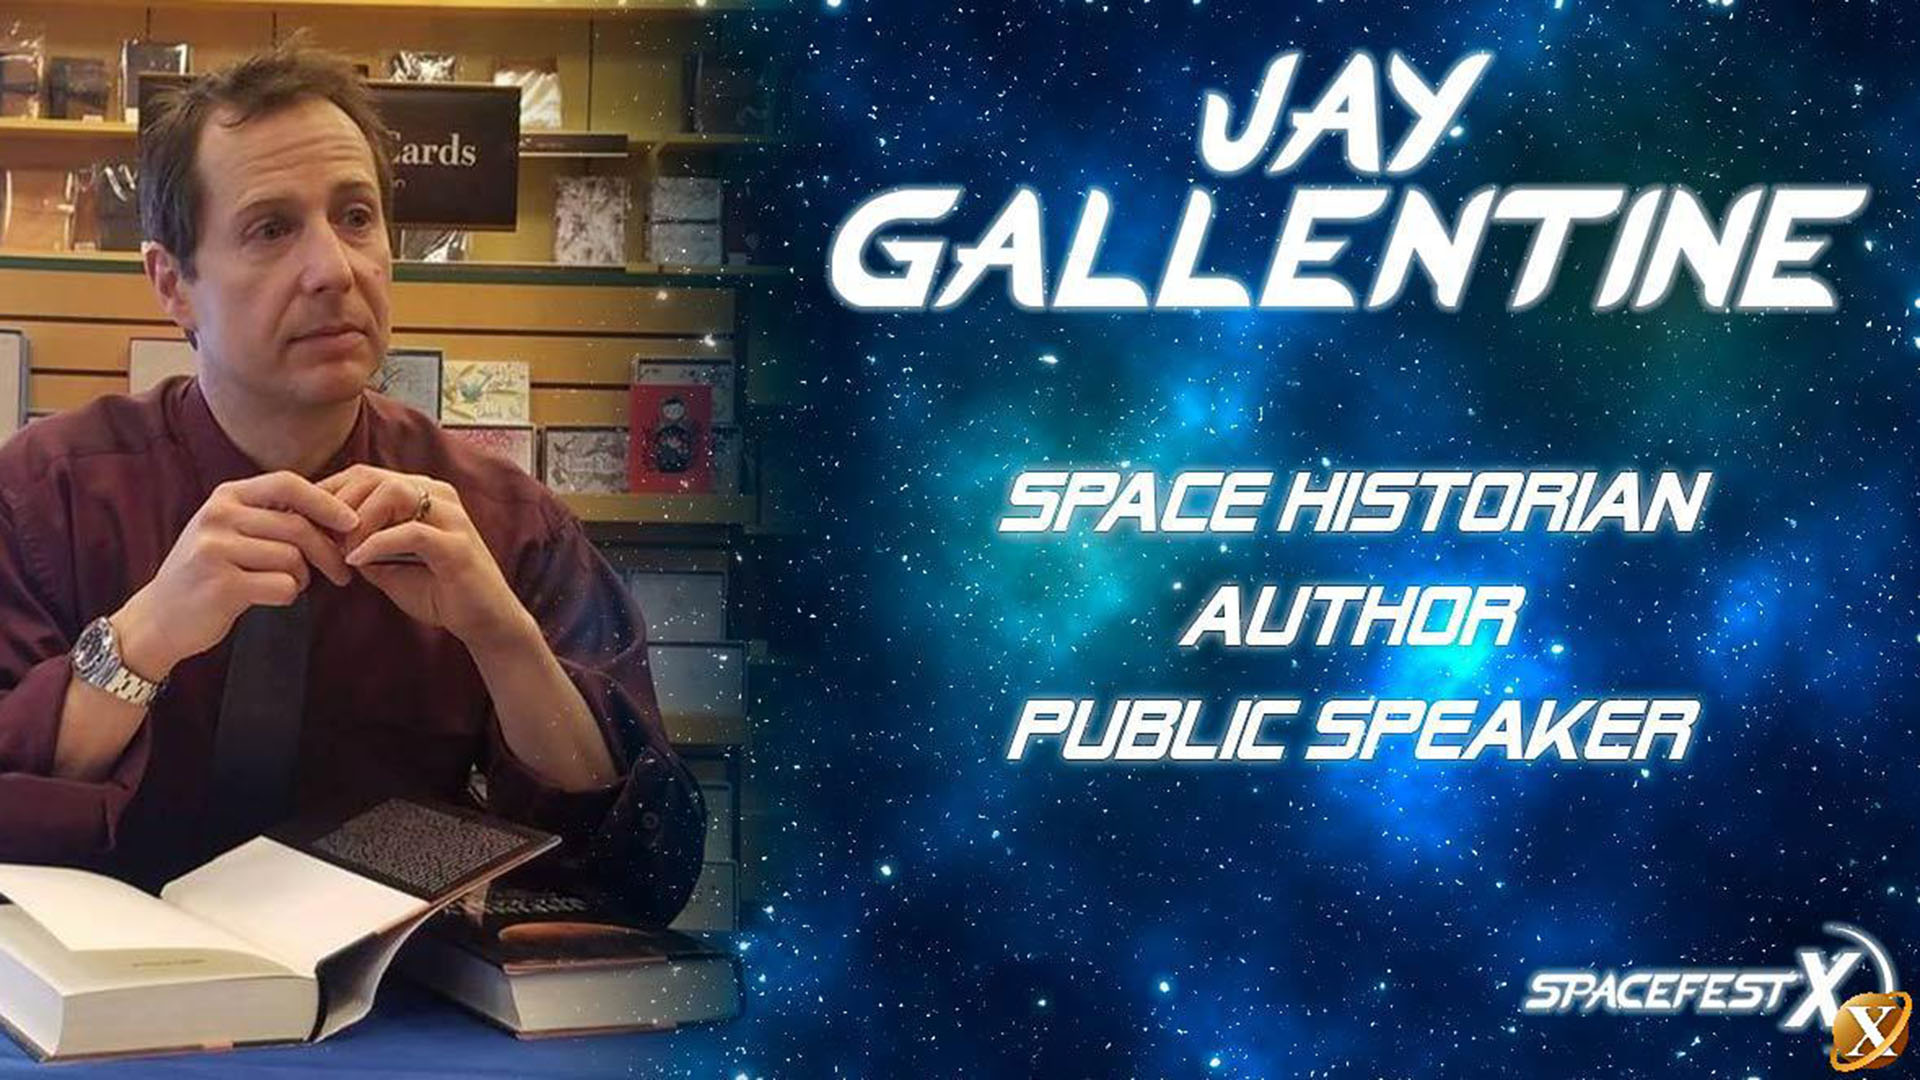 jay gallentine author hero